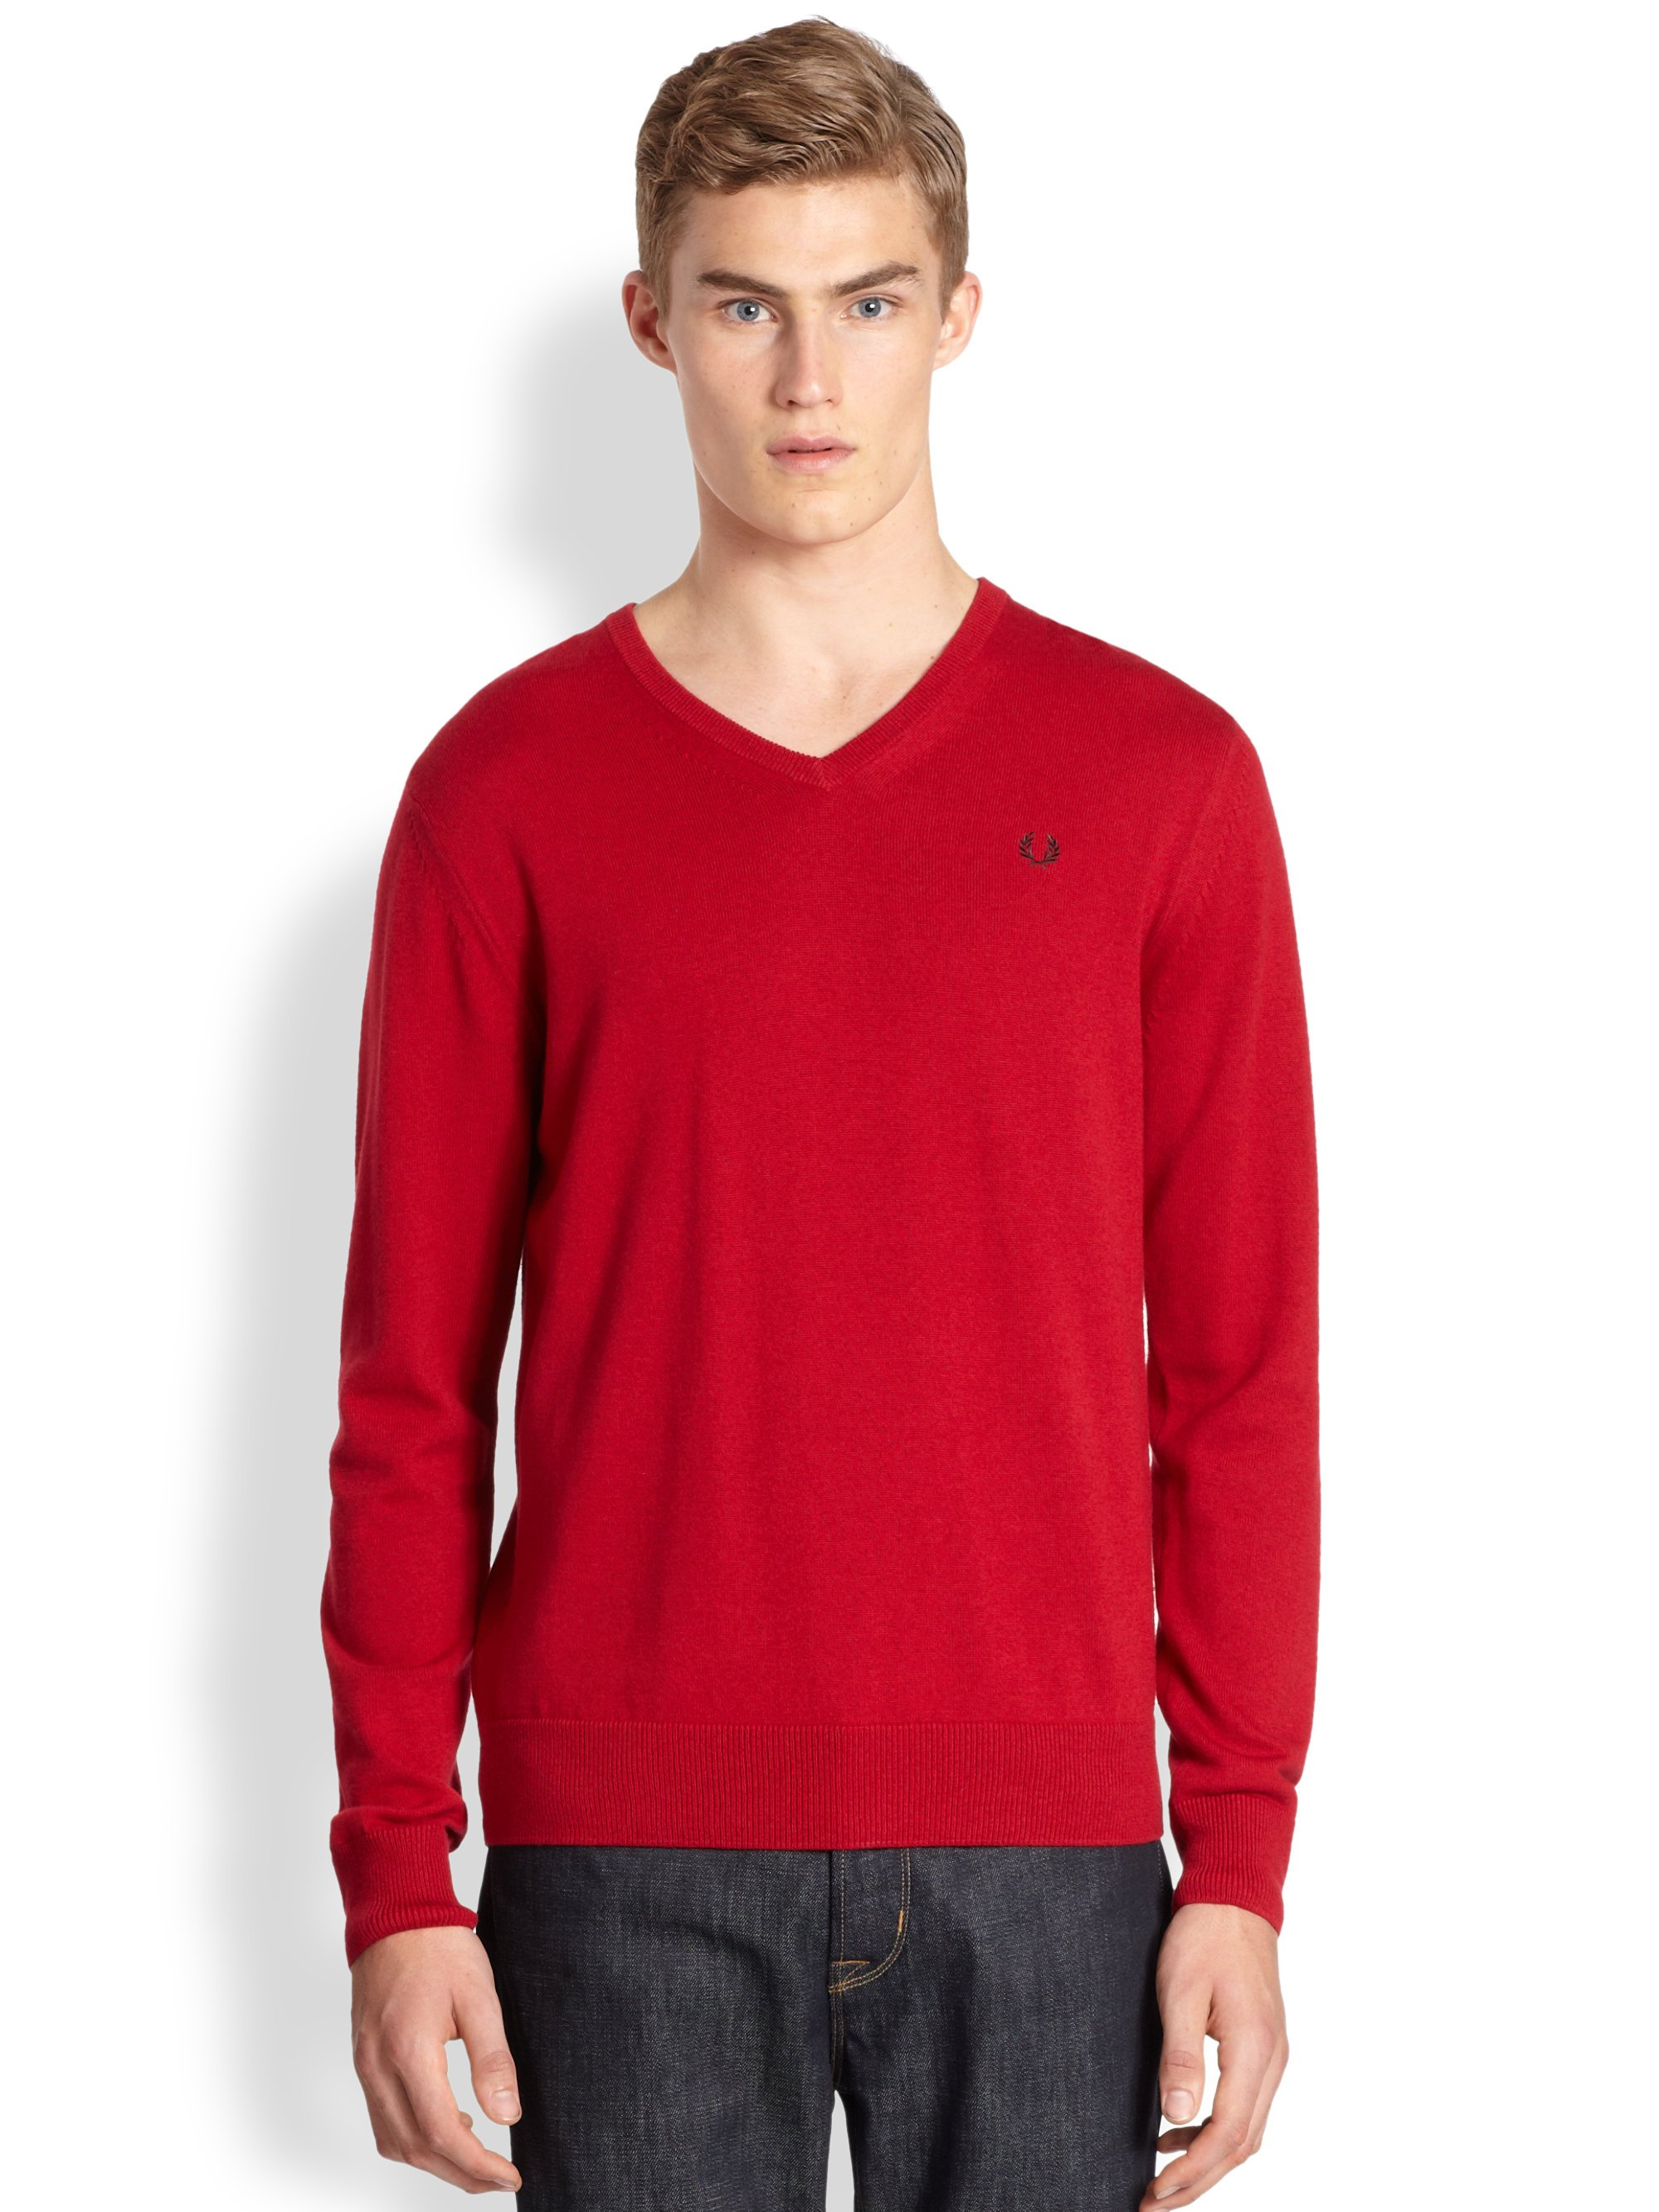 lyst fred perry classic tipped vneck sweater in blue for men. Black Bedroom Furniture Sets. Home Design Ideas